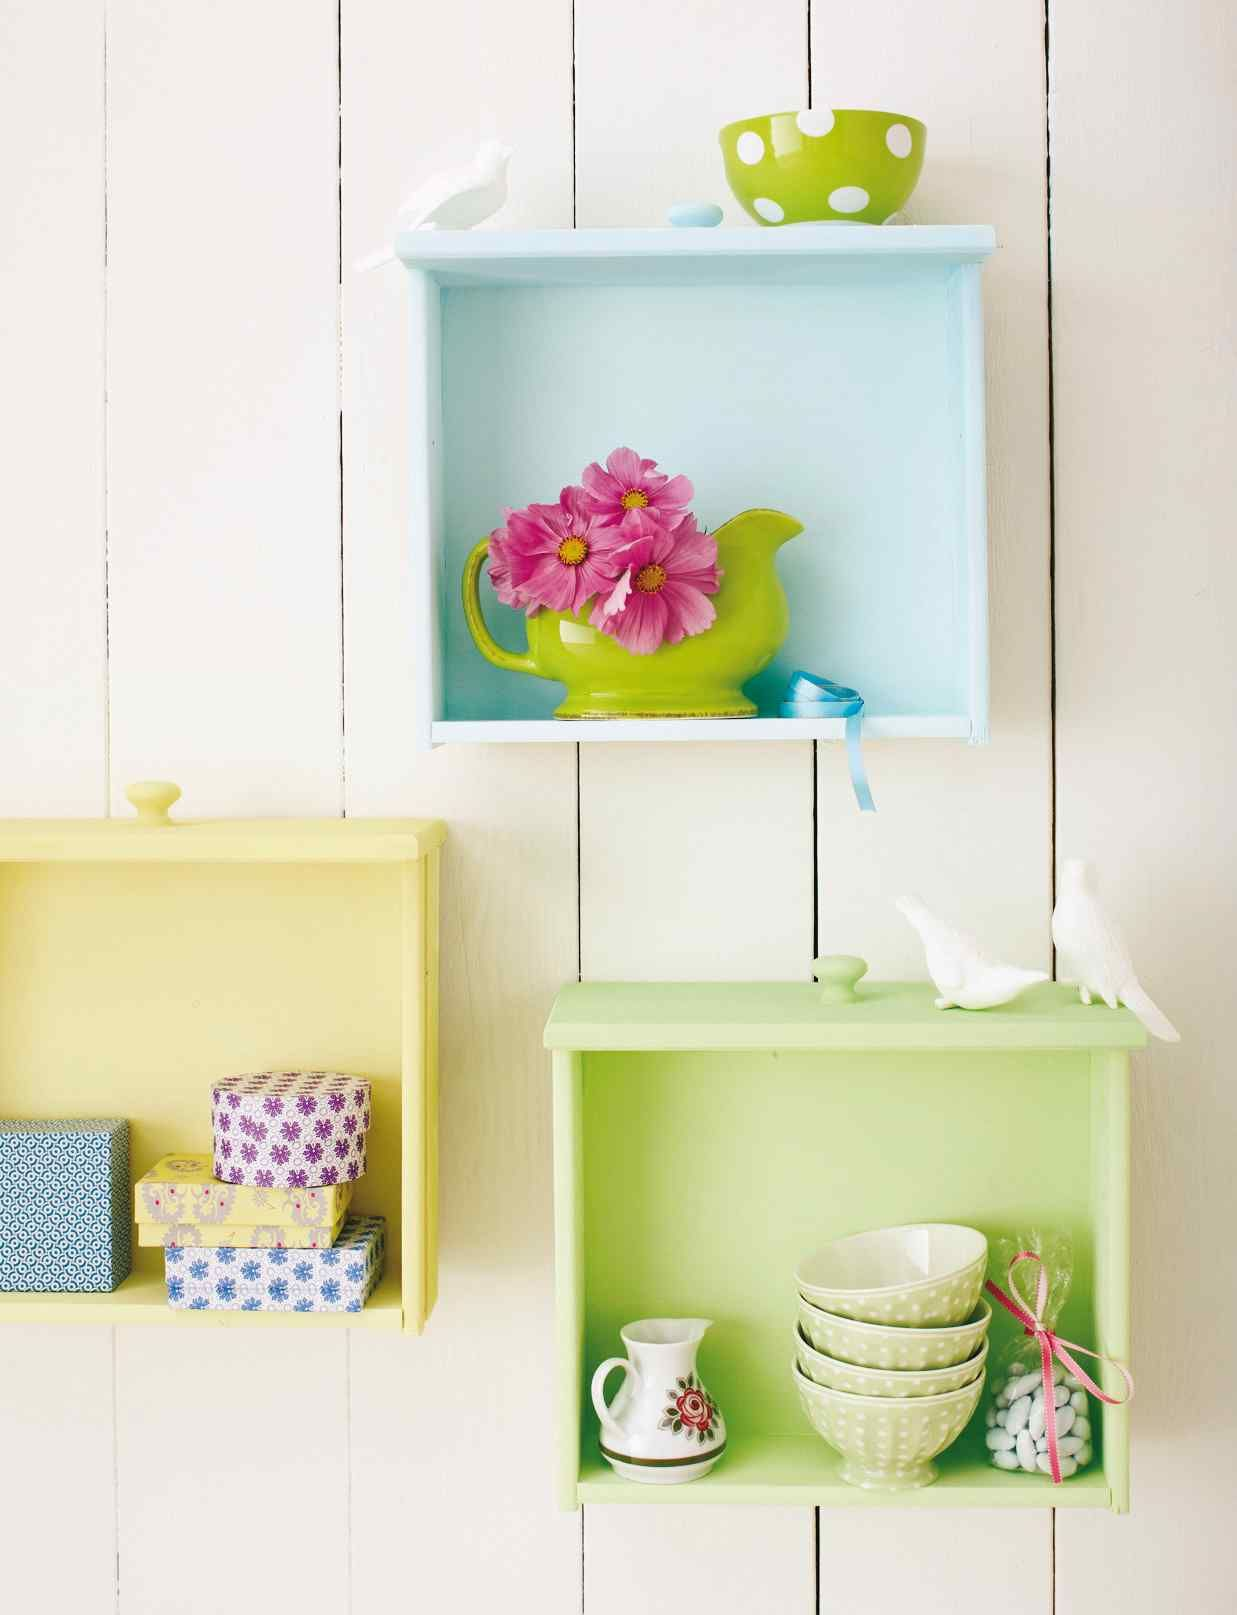 20 Diy Ideas How to Reuse Old Drawers Old Boards